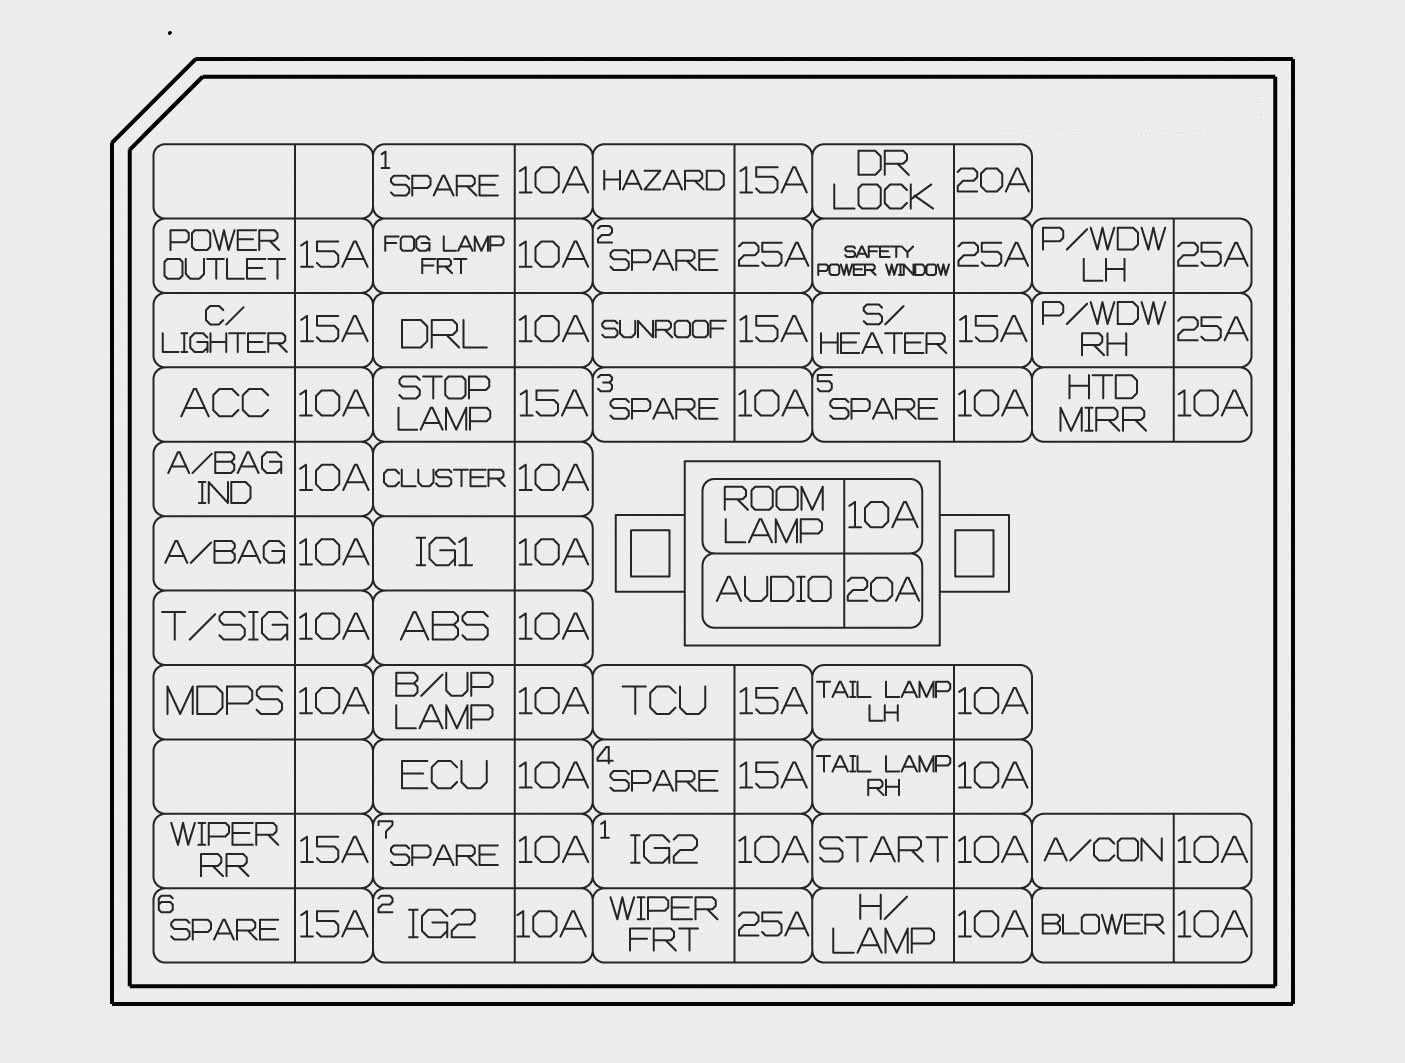 medium resolution of 2007 hyundai sonata fuse box wiring diagram 06 hyundai sonata fuse box 2006 hyundai azera fuse box